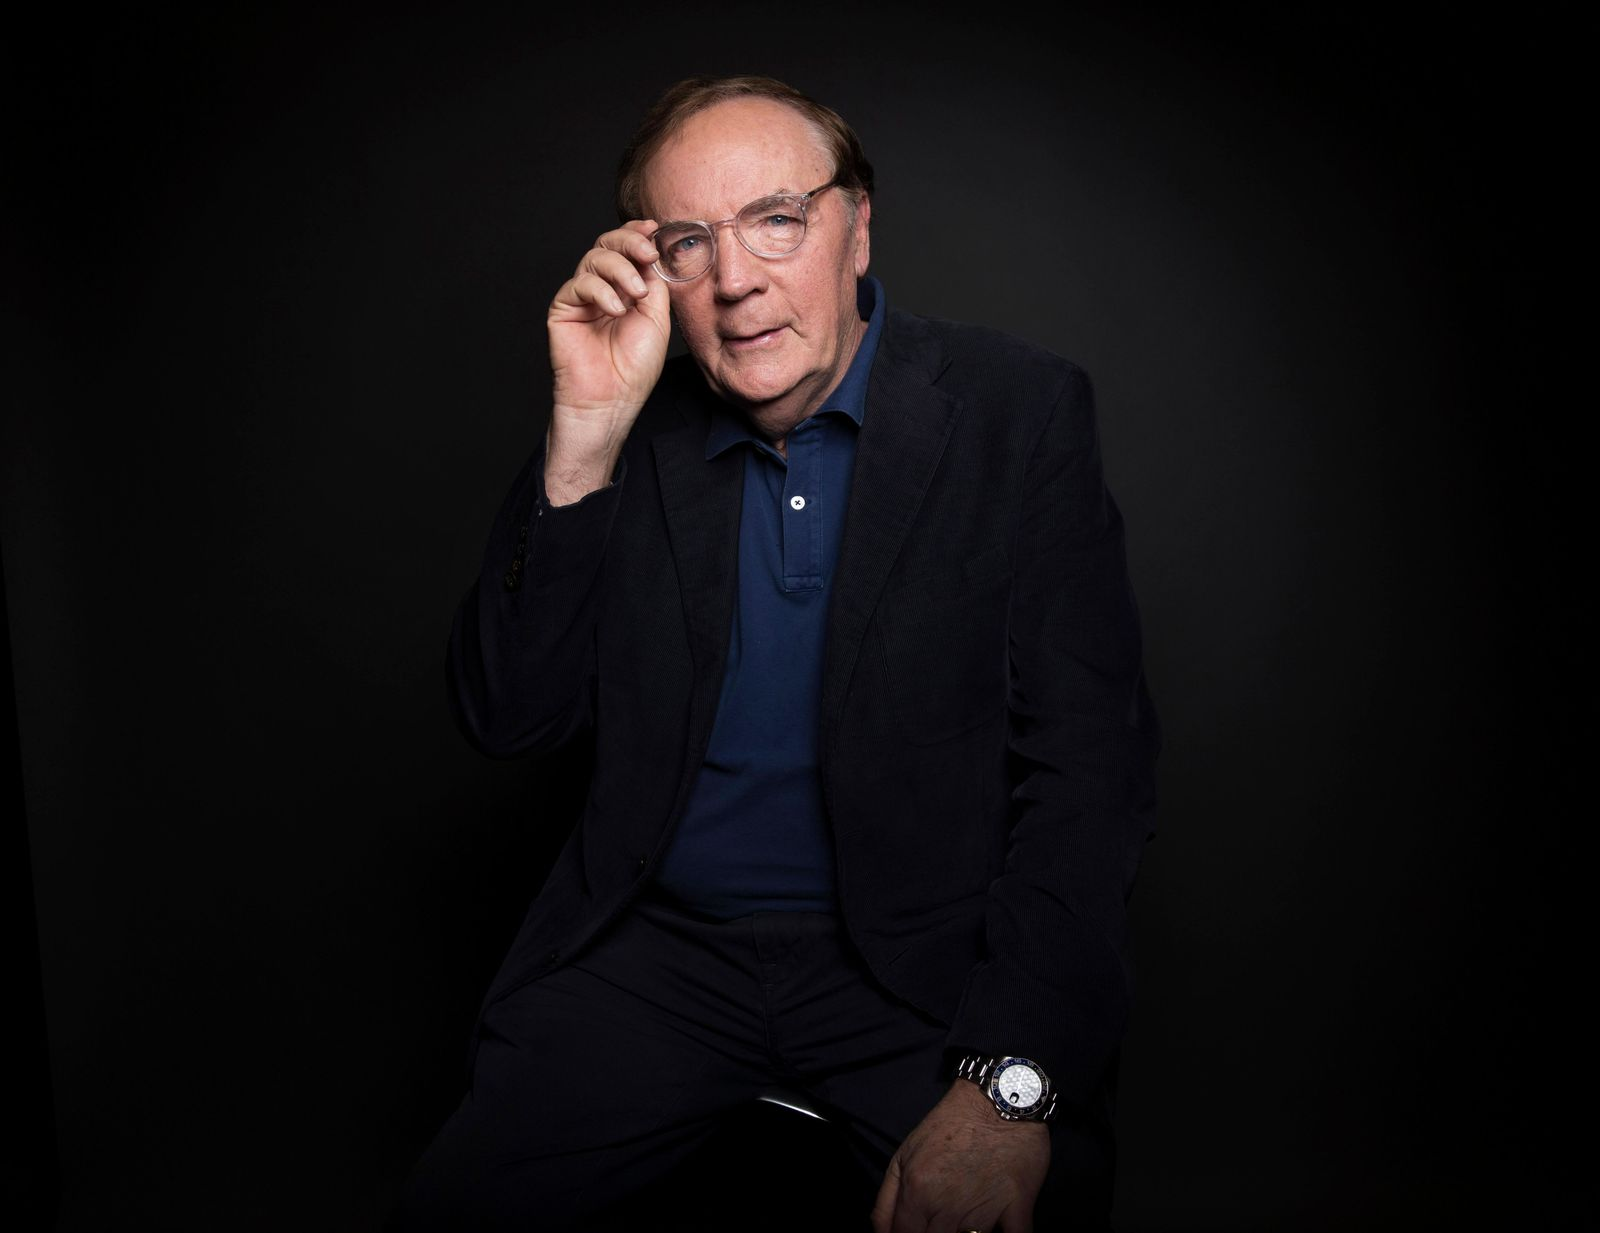 FILE - In this Aug. 30, 2016, file photo, author James Patterson poses for a portrait in New York. Oscar-winning actor Jon Voight, singer and musician Alison Krauss and mystery writer Patterson are among those being honored by President Donald Trump for their contributions to the arts or the humanities.(Photo by Taylor Jewell/Invision/AP, File)